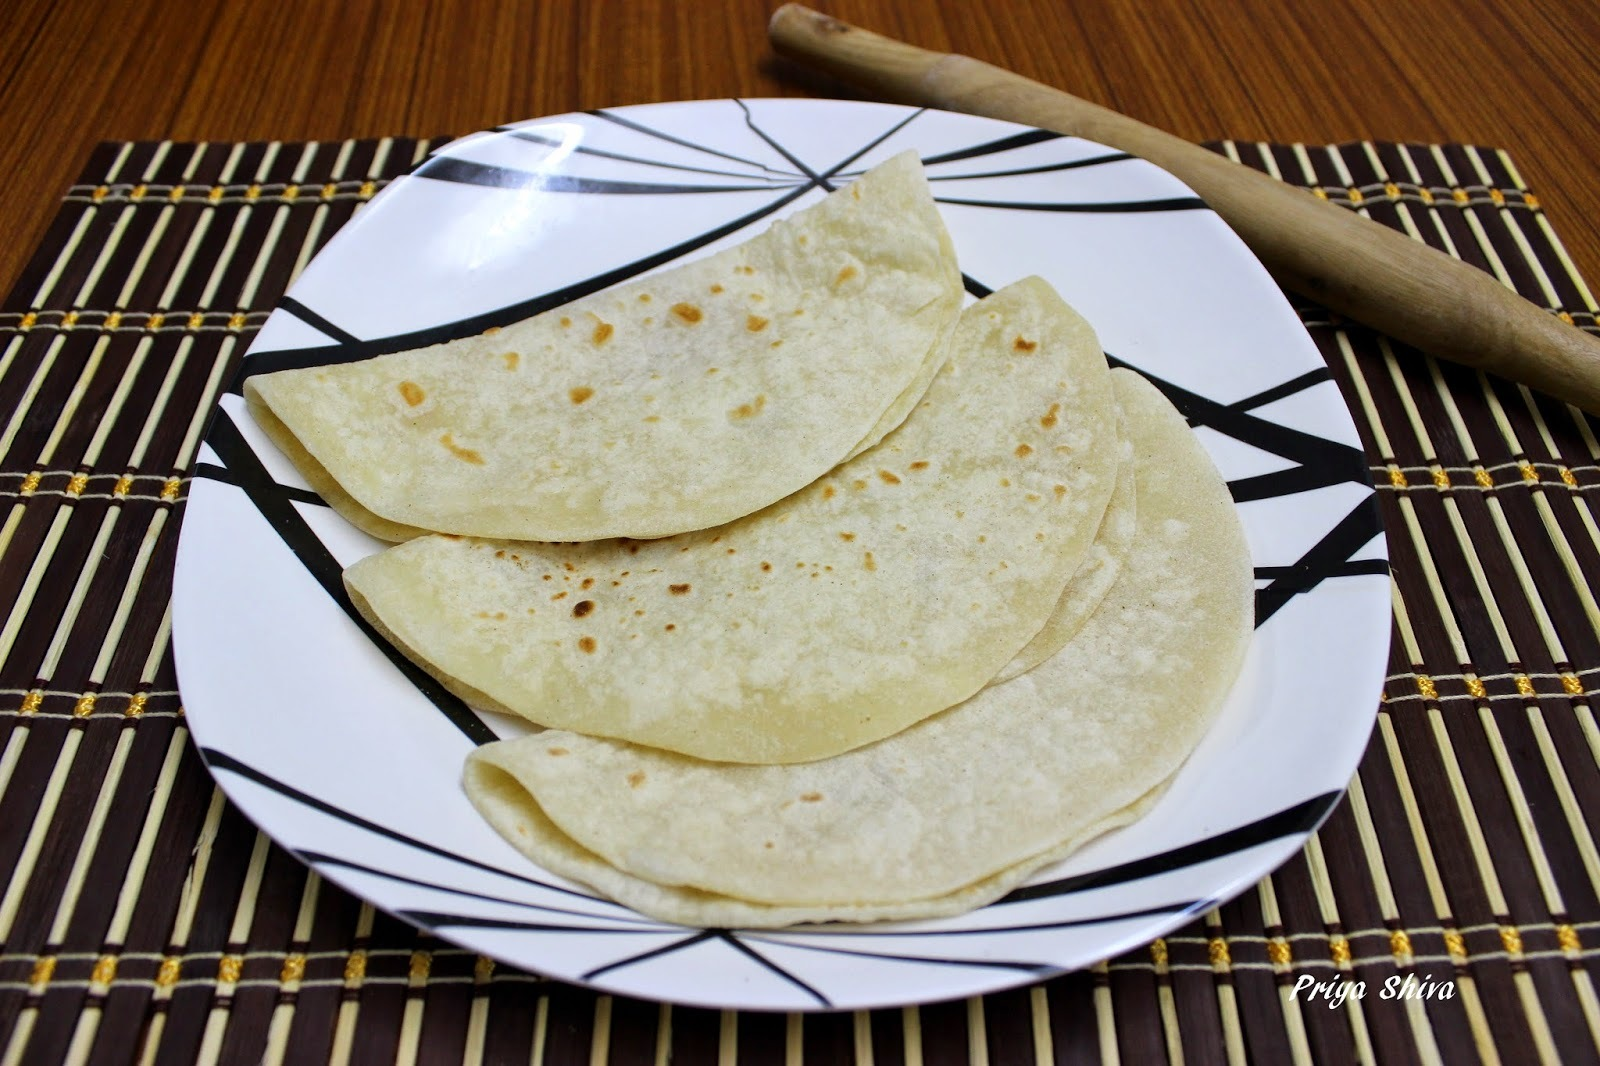 Homemade Tortillas / Tortillas recipe